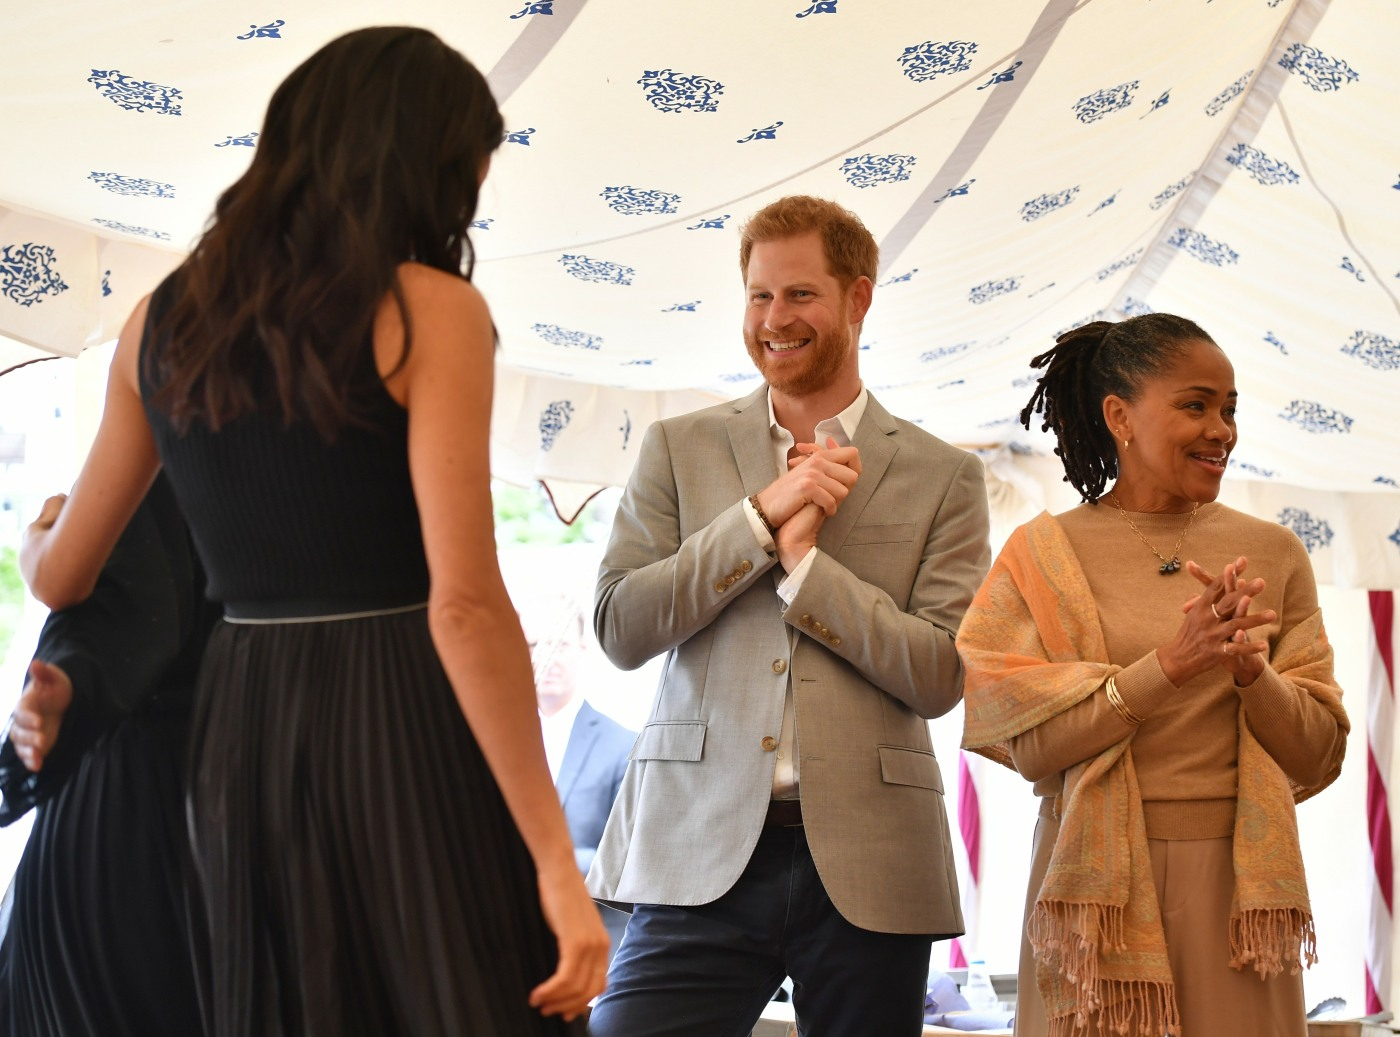 Meghan, Duchess of Sussex (L), her mother, Doria Ragland (R) and Britain's Prince Harry, Duke of Sussex take part in the launch of a cookbook with recipes from a group of women affected by the Grenfell Tower fire at Kensington Palace in London on September 20, 2018.